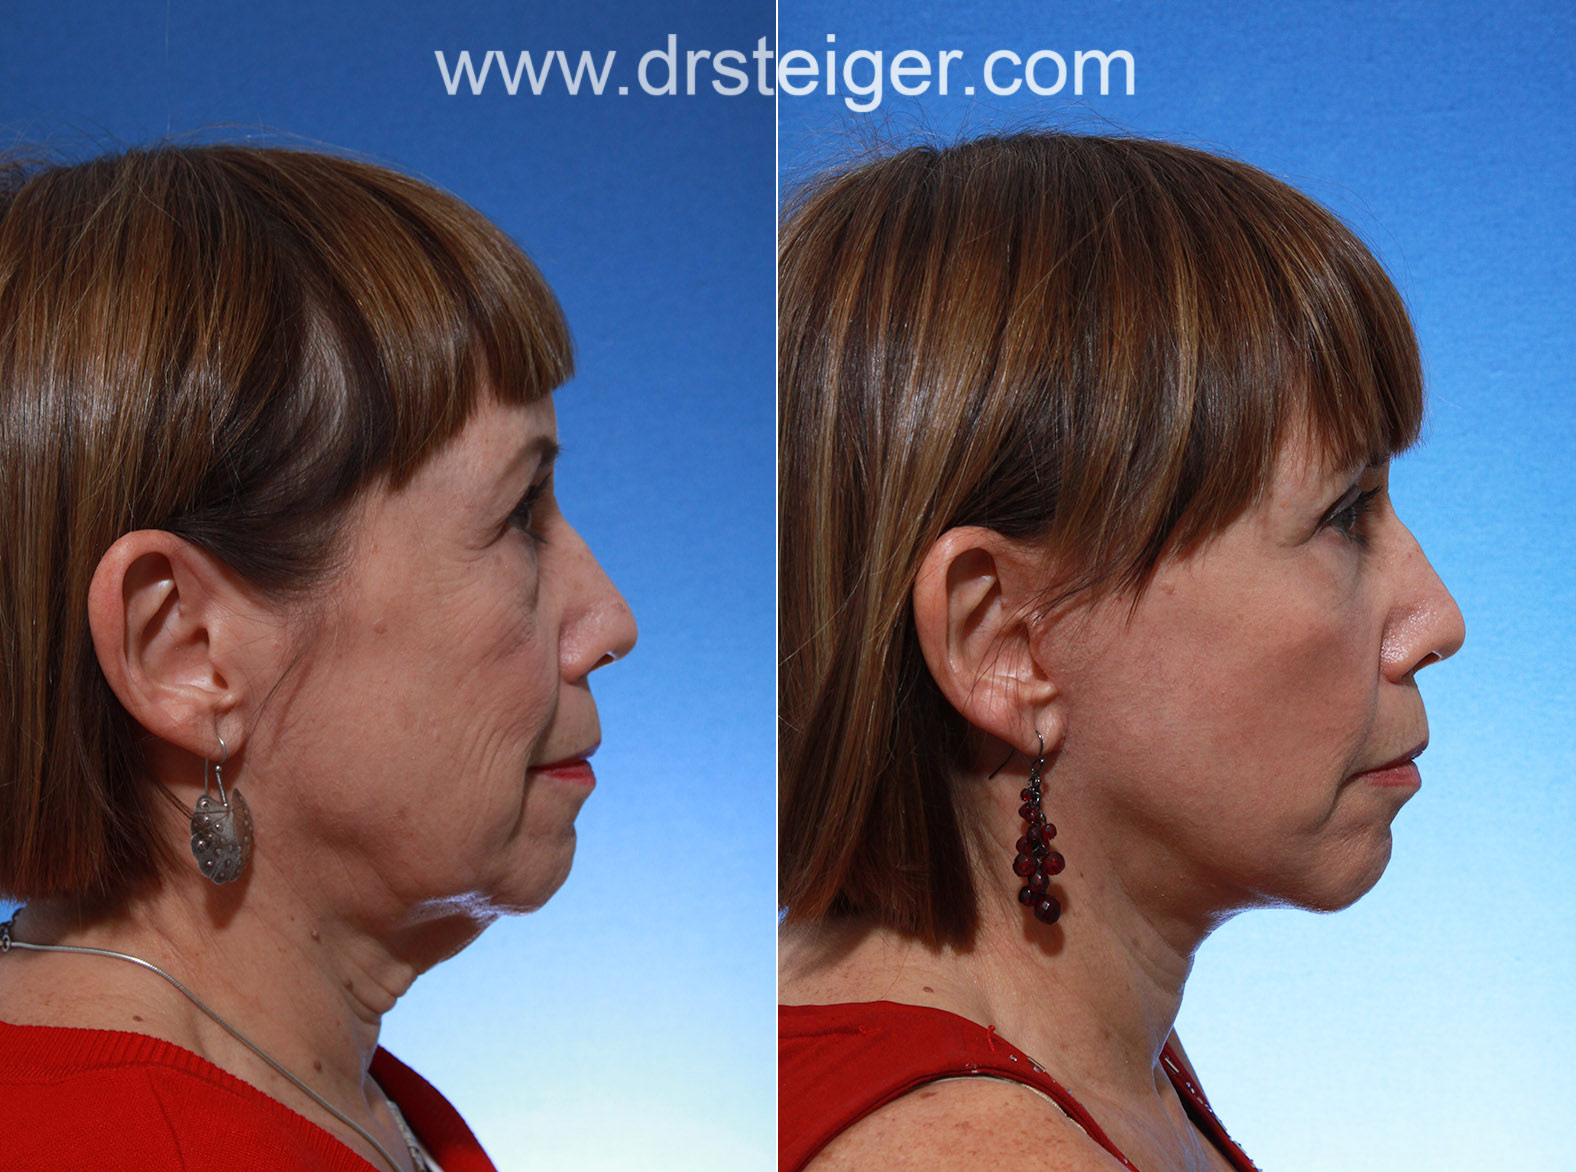 Facelift surgery with eyelid surgery photos